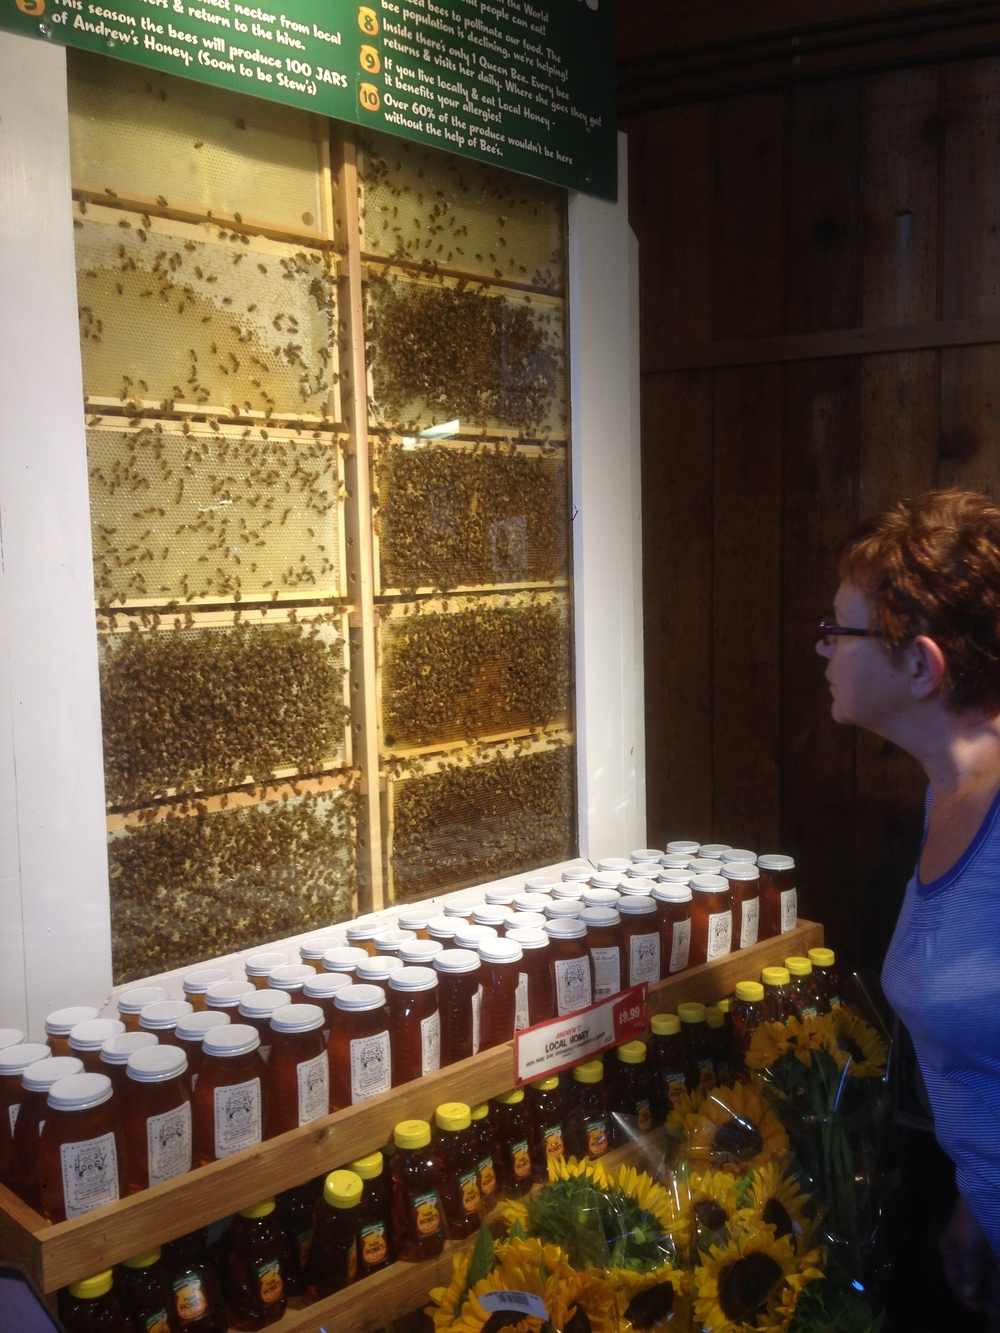 Observation Hive of Honey Bees